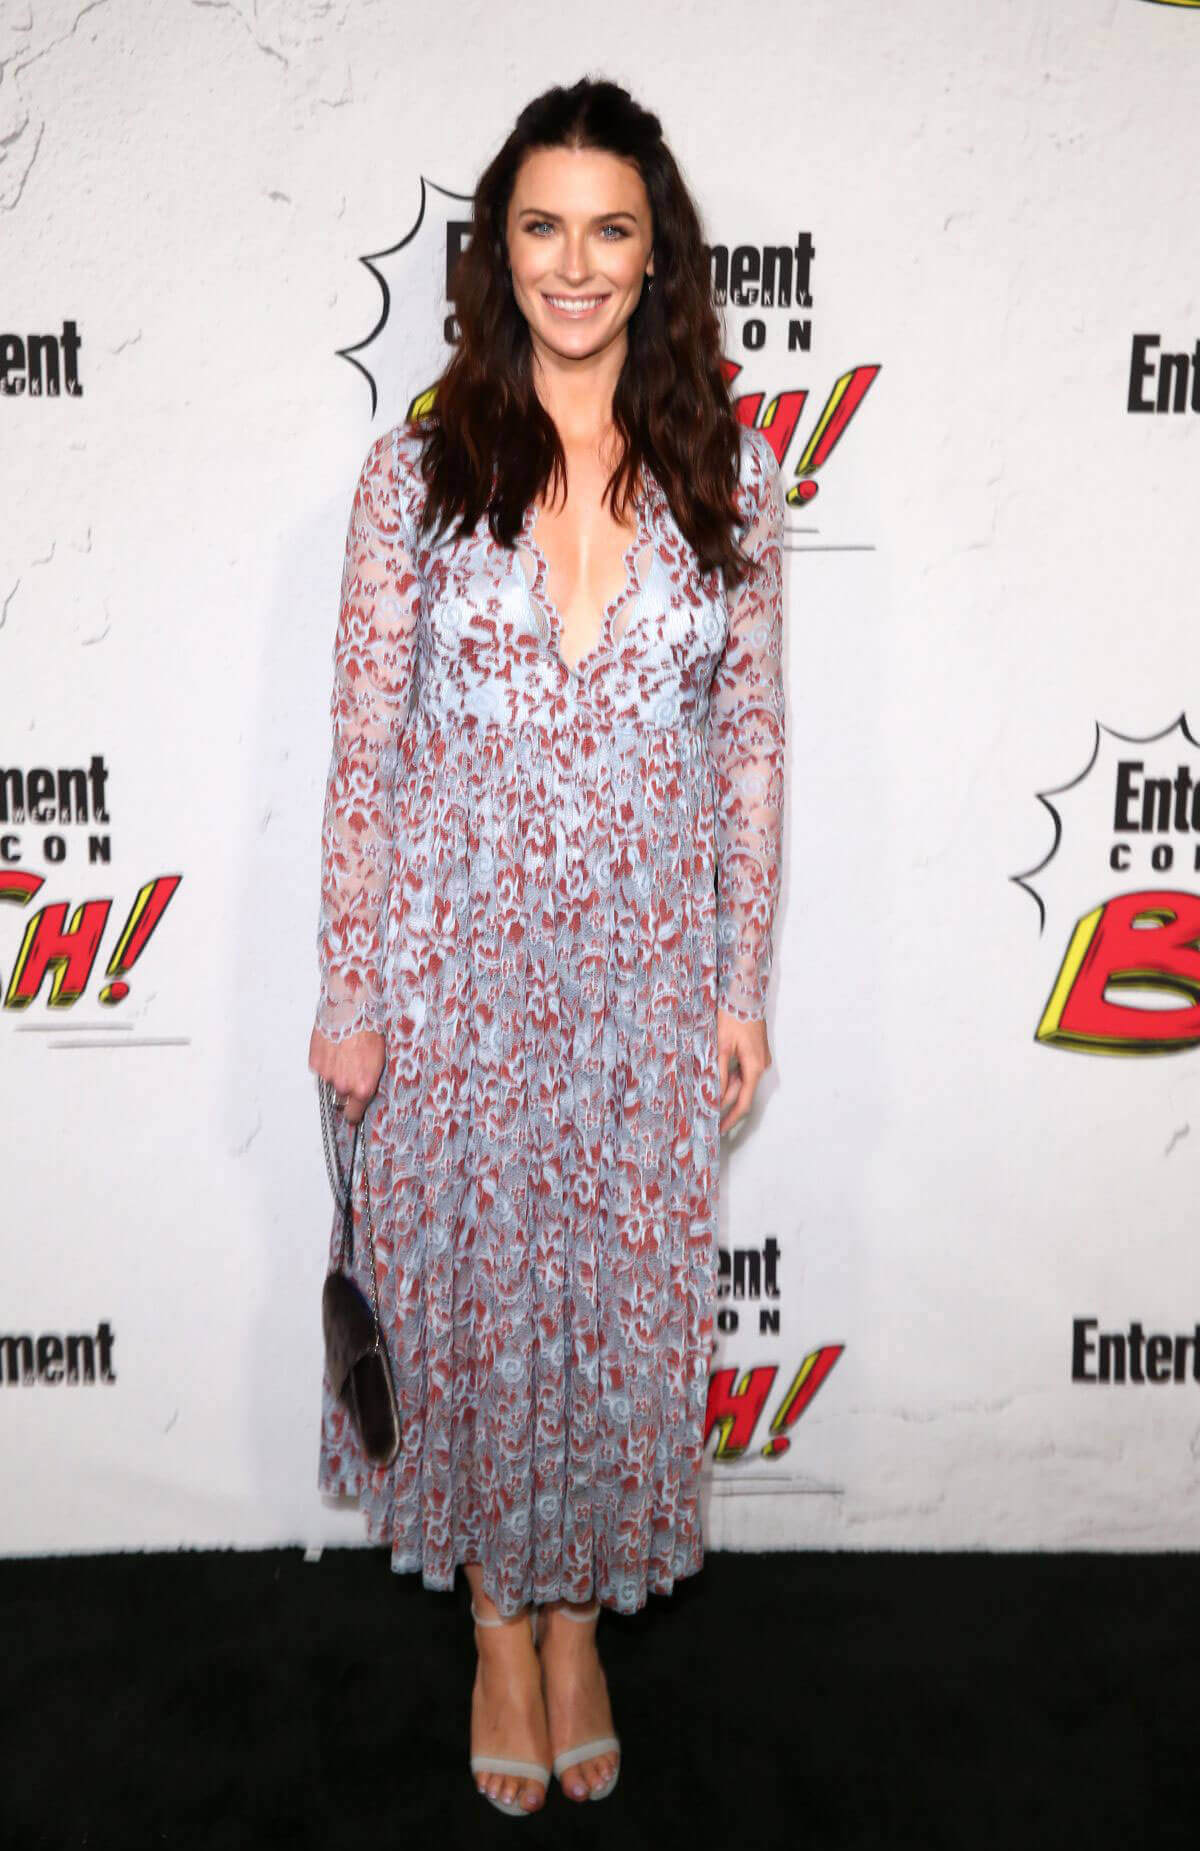 Bridget Regan Stills at Entertainment Weekly's Comic-con Party in San Diego